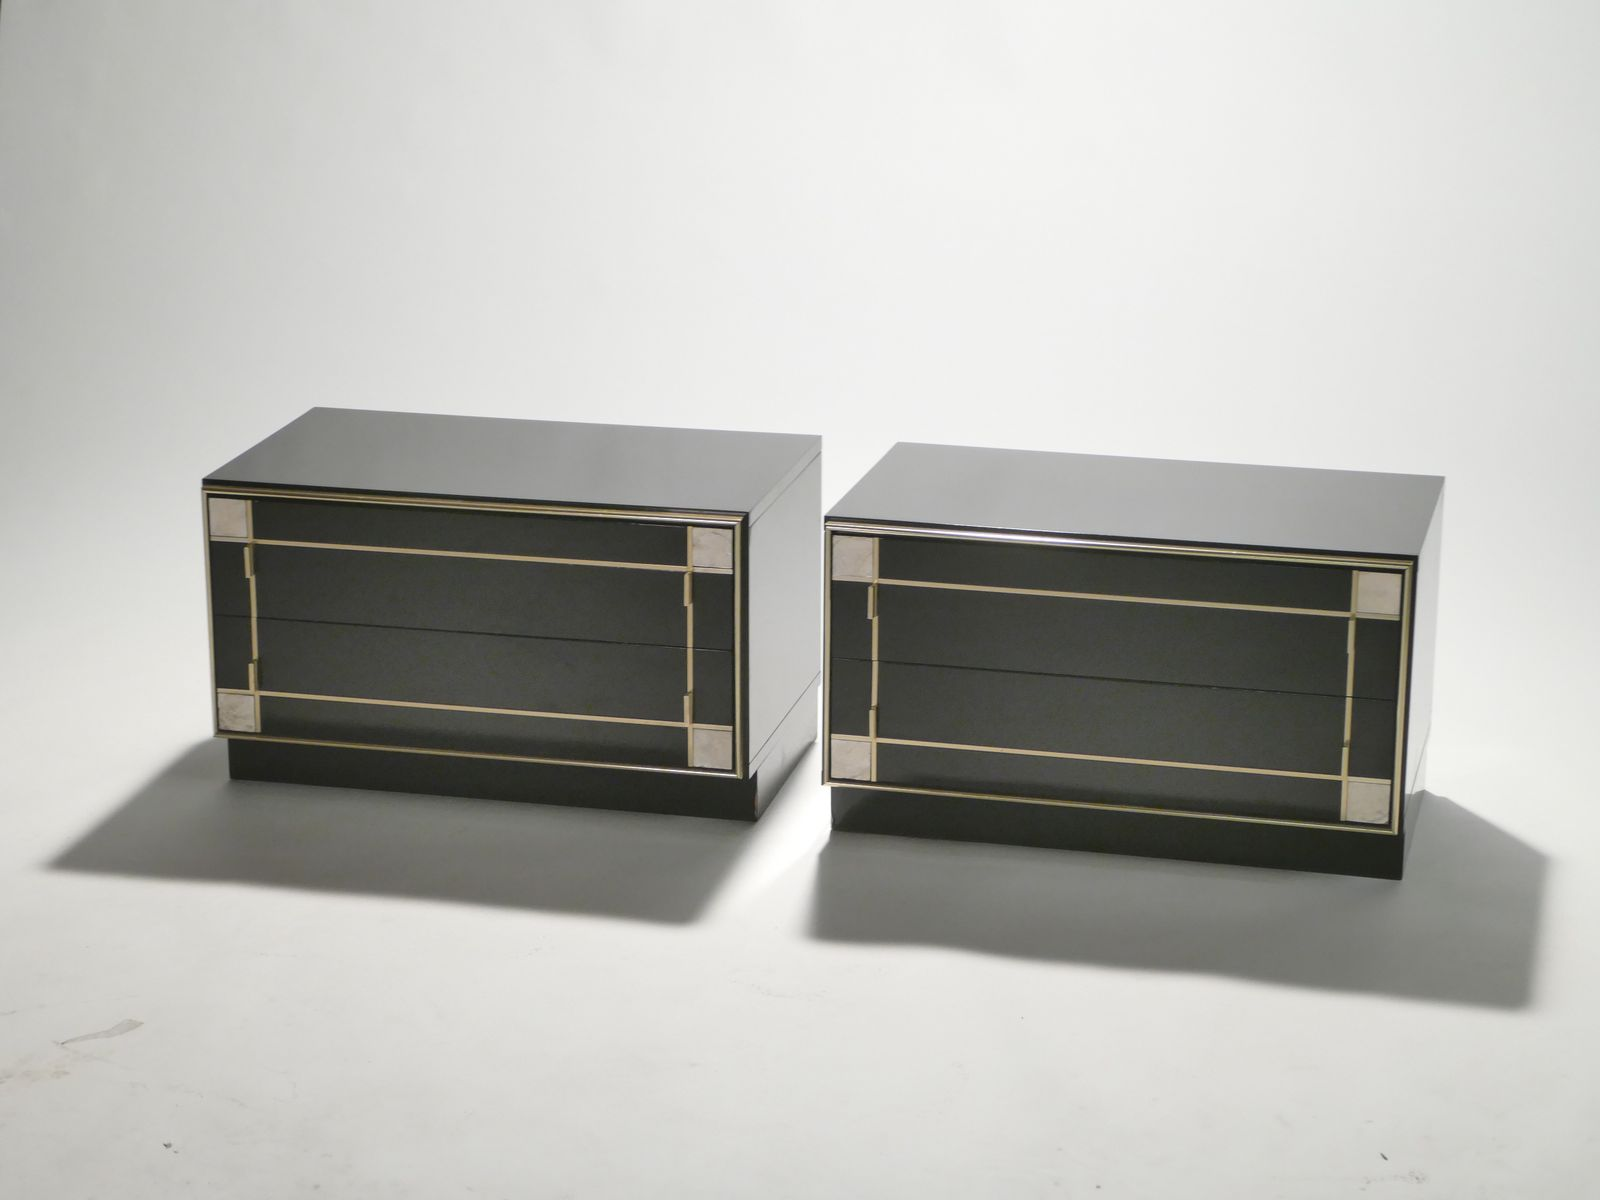 brass lacquered bedside tables from roche bobois 1975. Black Bedroom Furniture Sets. Home Design Ideas